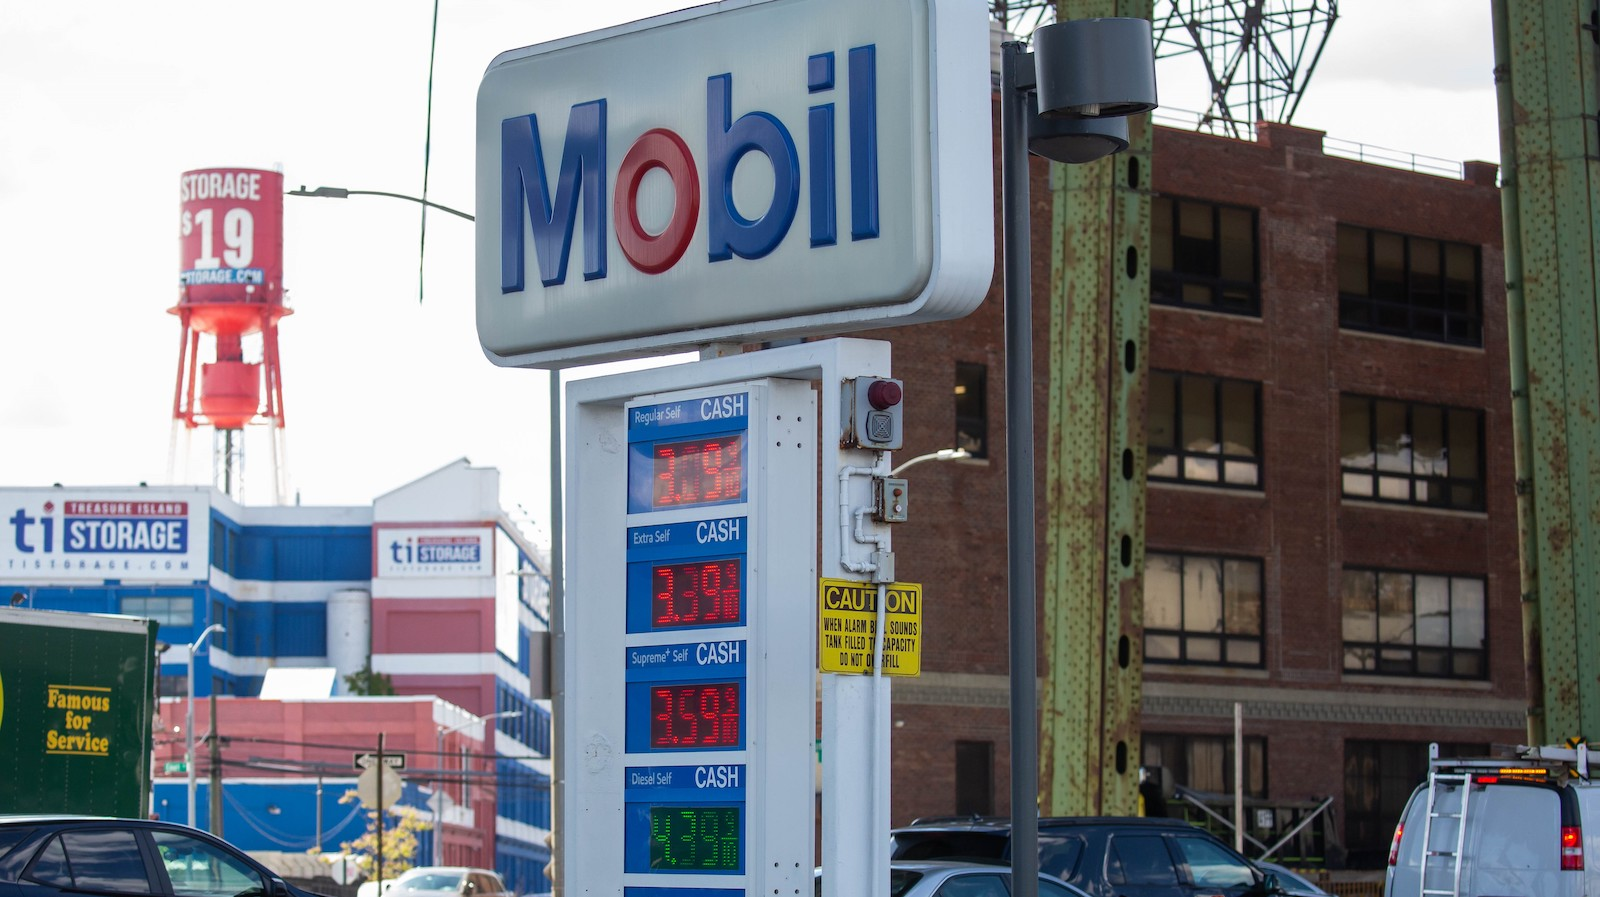 An image of a Mobil gas station sign